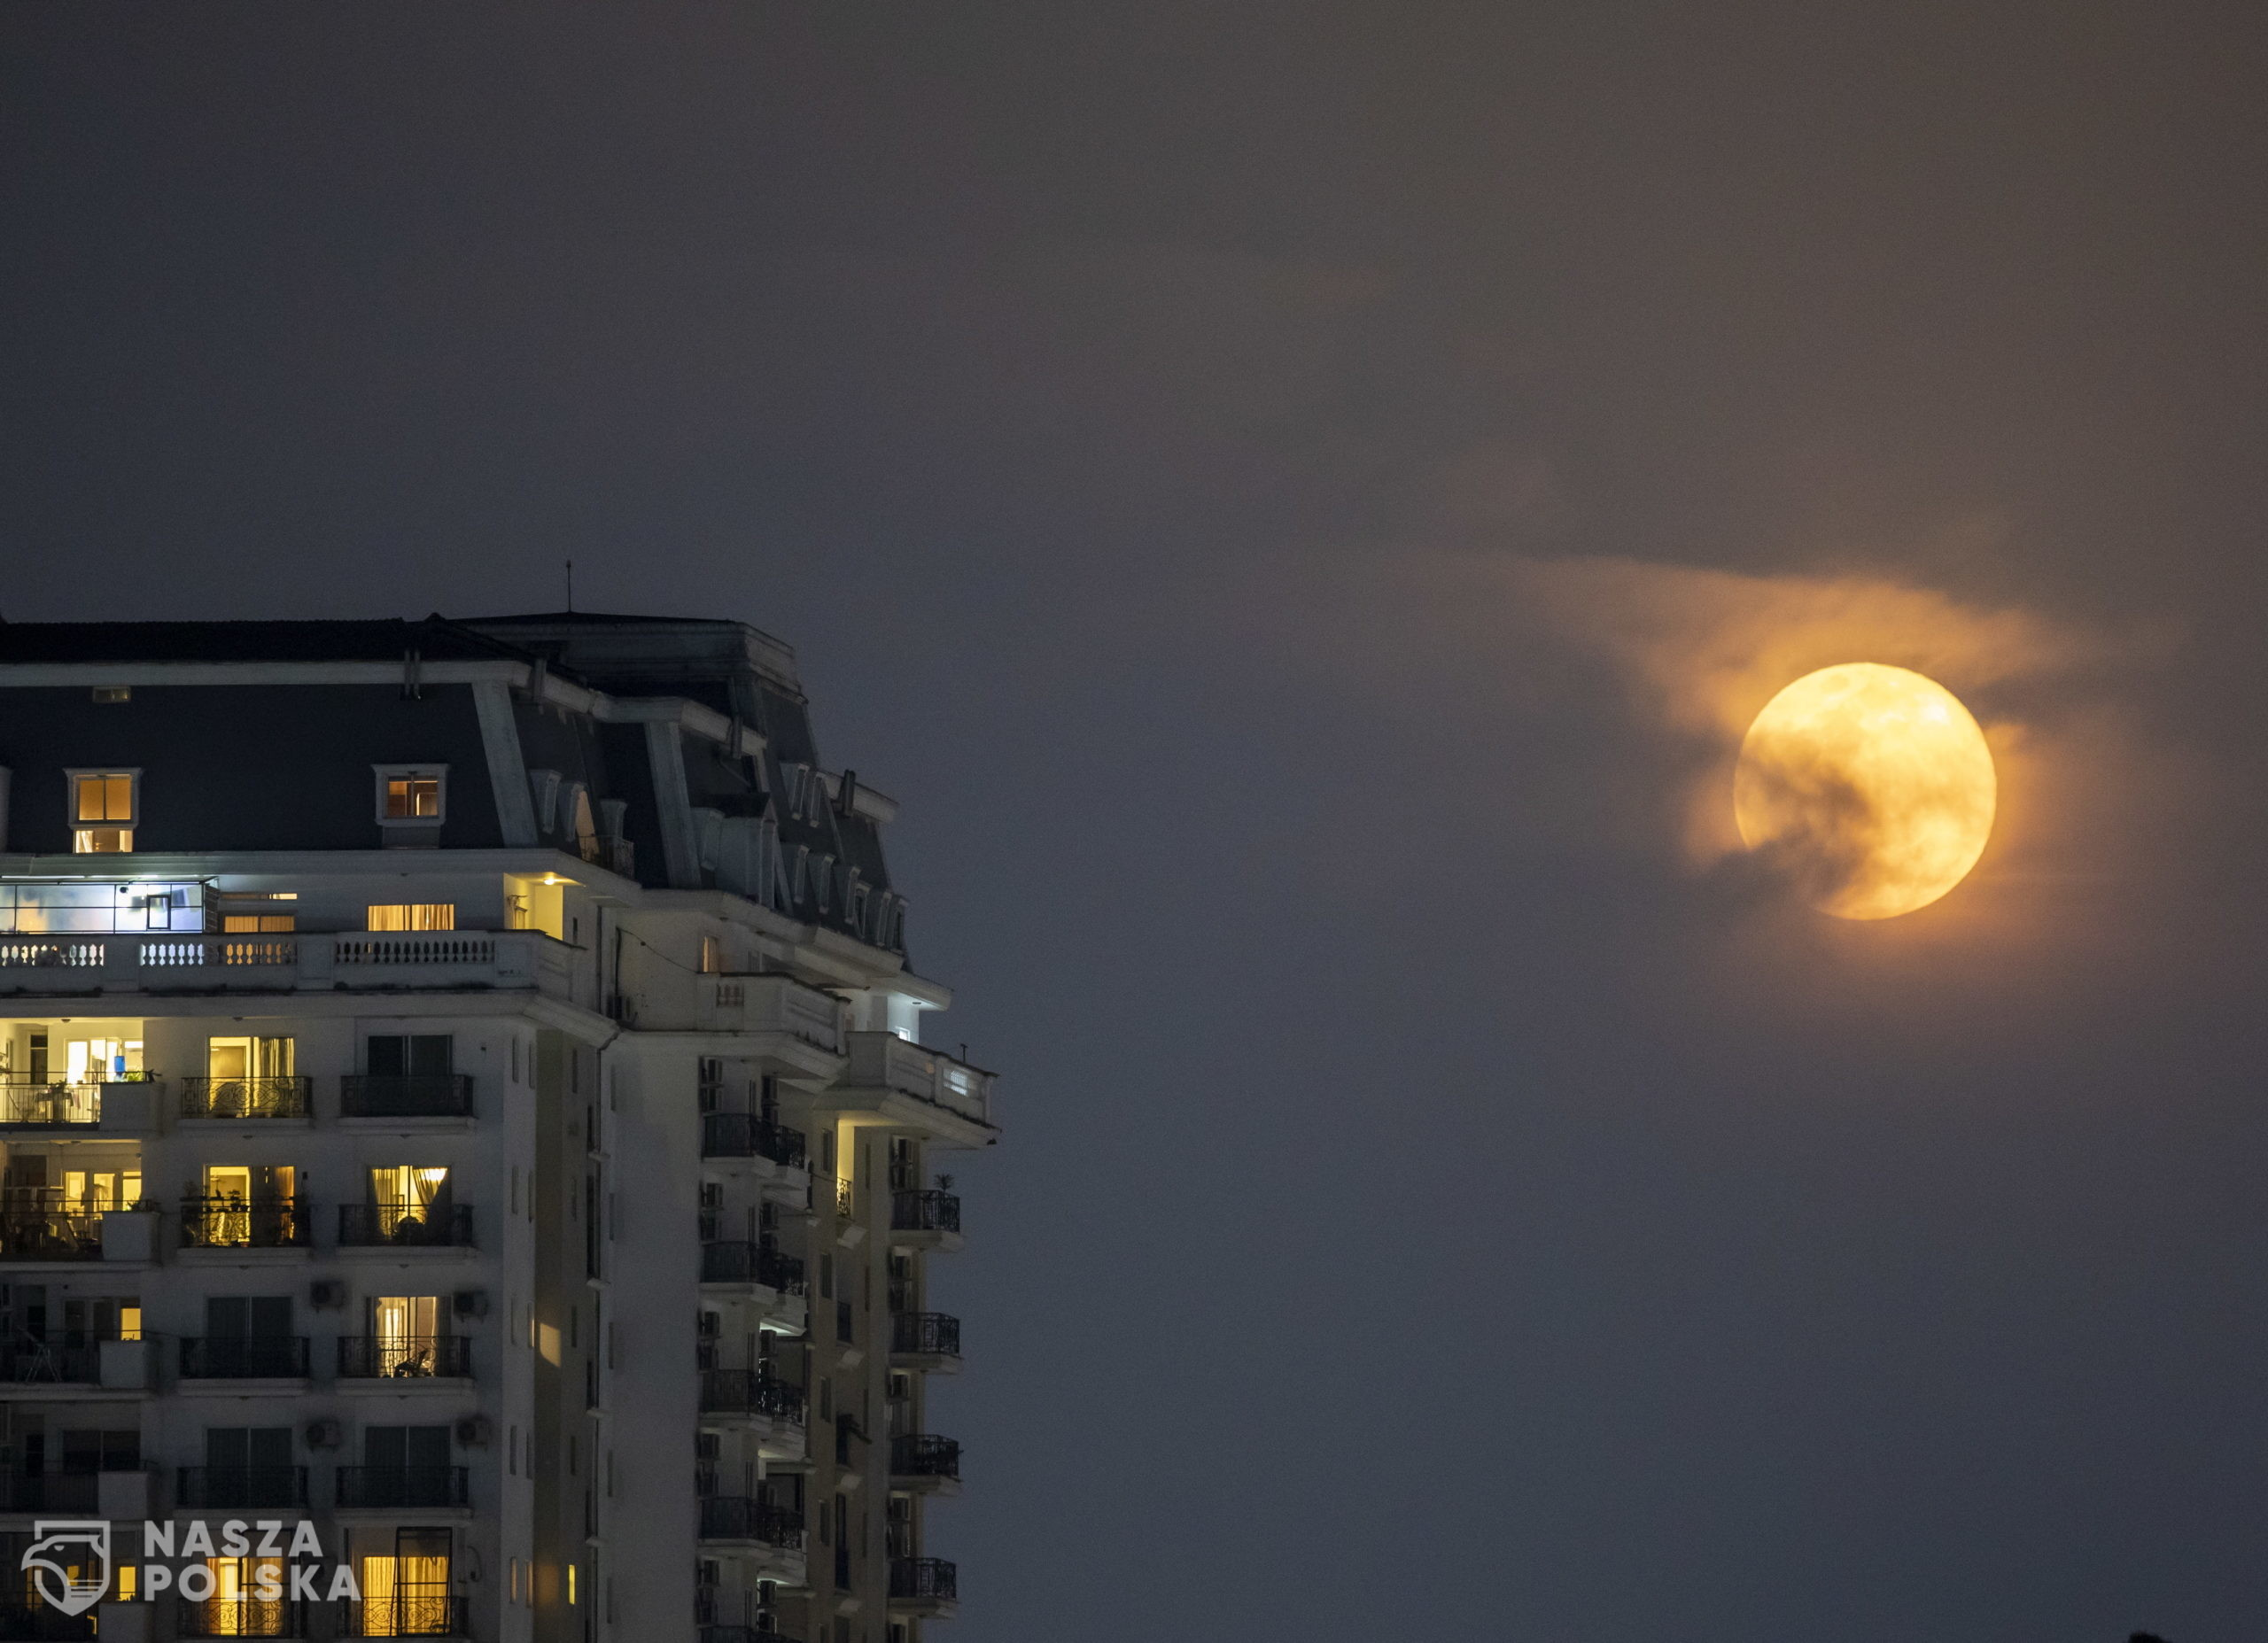 epa08350856 The full moon is seen glowing pink as its rise over Kathmandu city, Nepal 08 April 2020. The pink super moon will be the largest and brightest of 2020.  EPA/NARENDRA SHRESTHA  Dostawca: PAP/EPA.